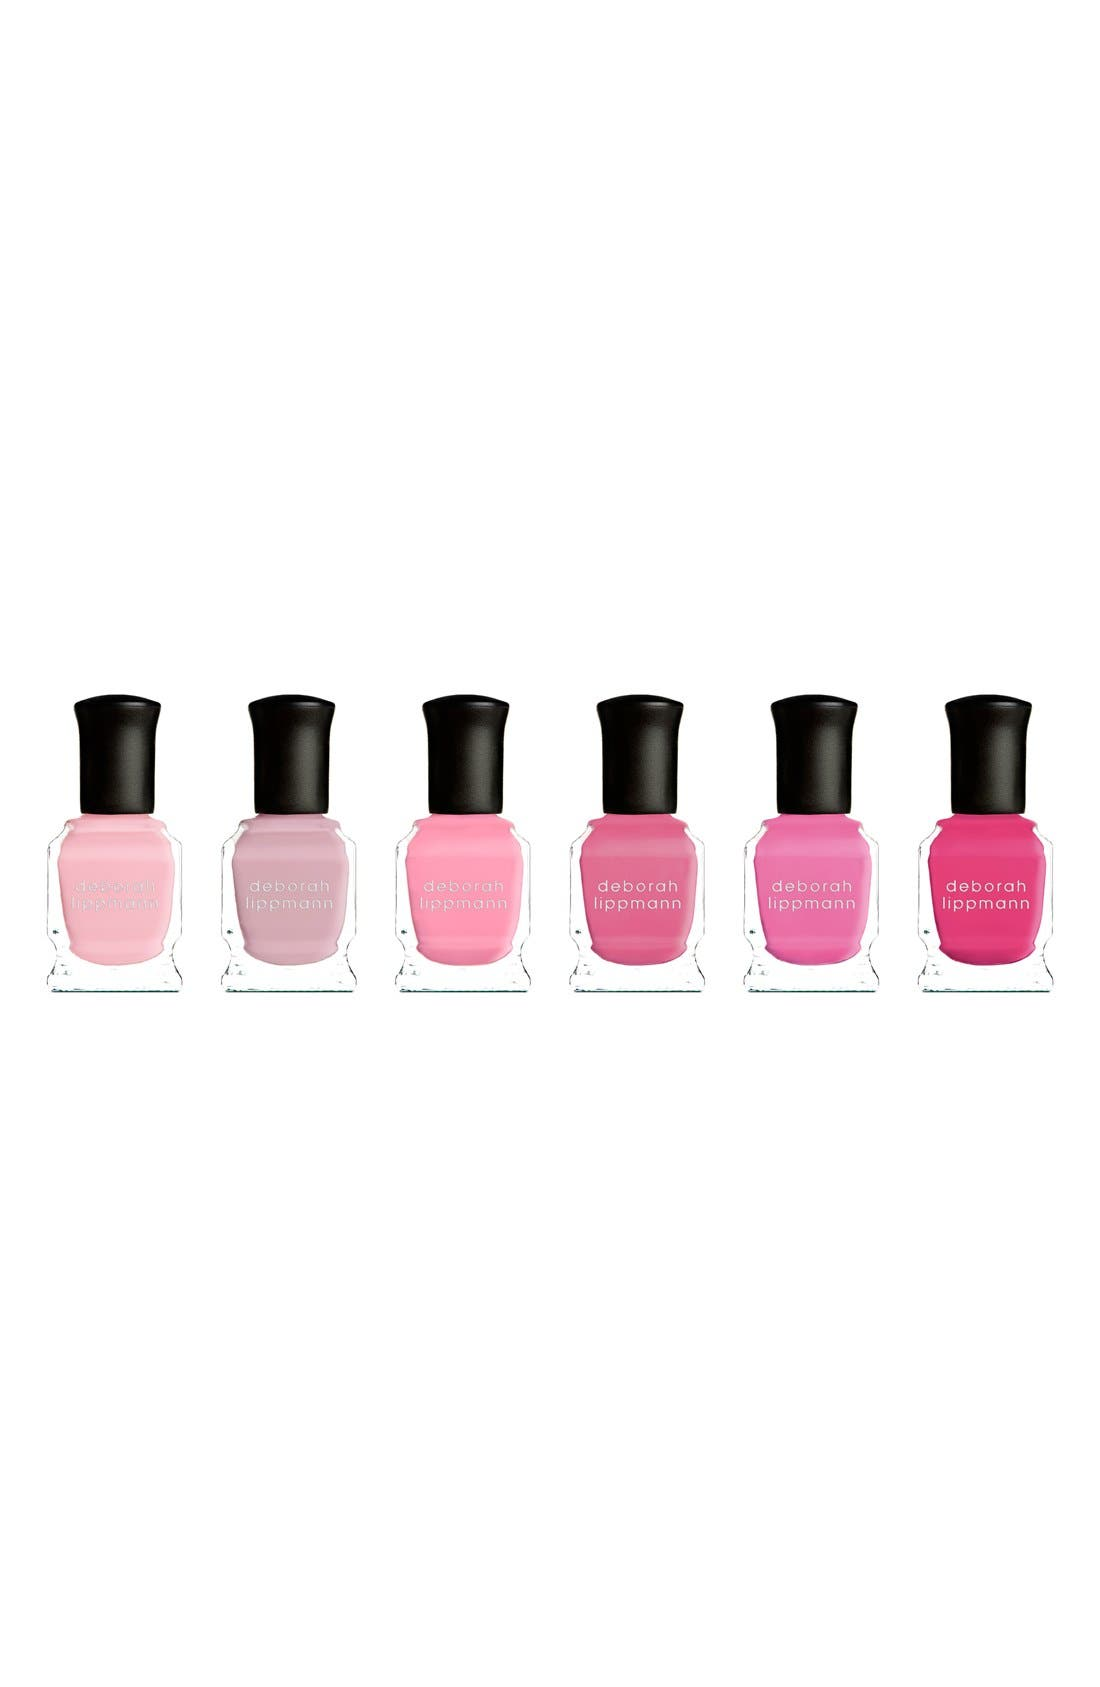 Deborah Lippmann 'Pretty in Pink' Nail Color Set (Limited Edition) ($72 Value)